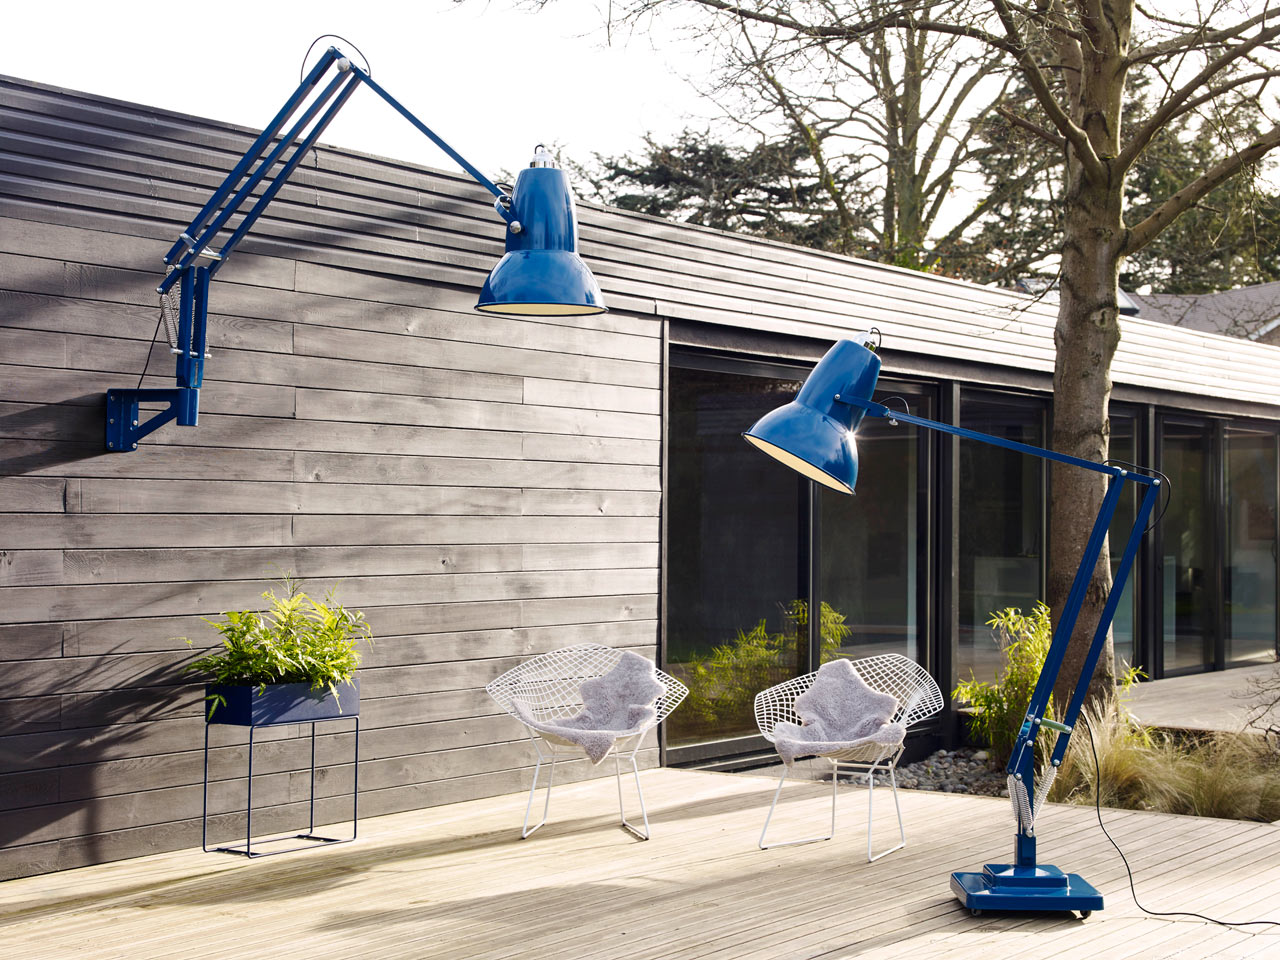 Anglepoise_Original_1227_Giant_Outdoor_Lamp-1